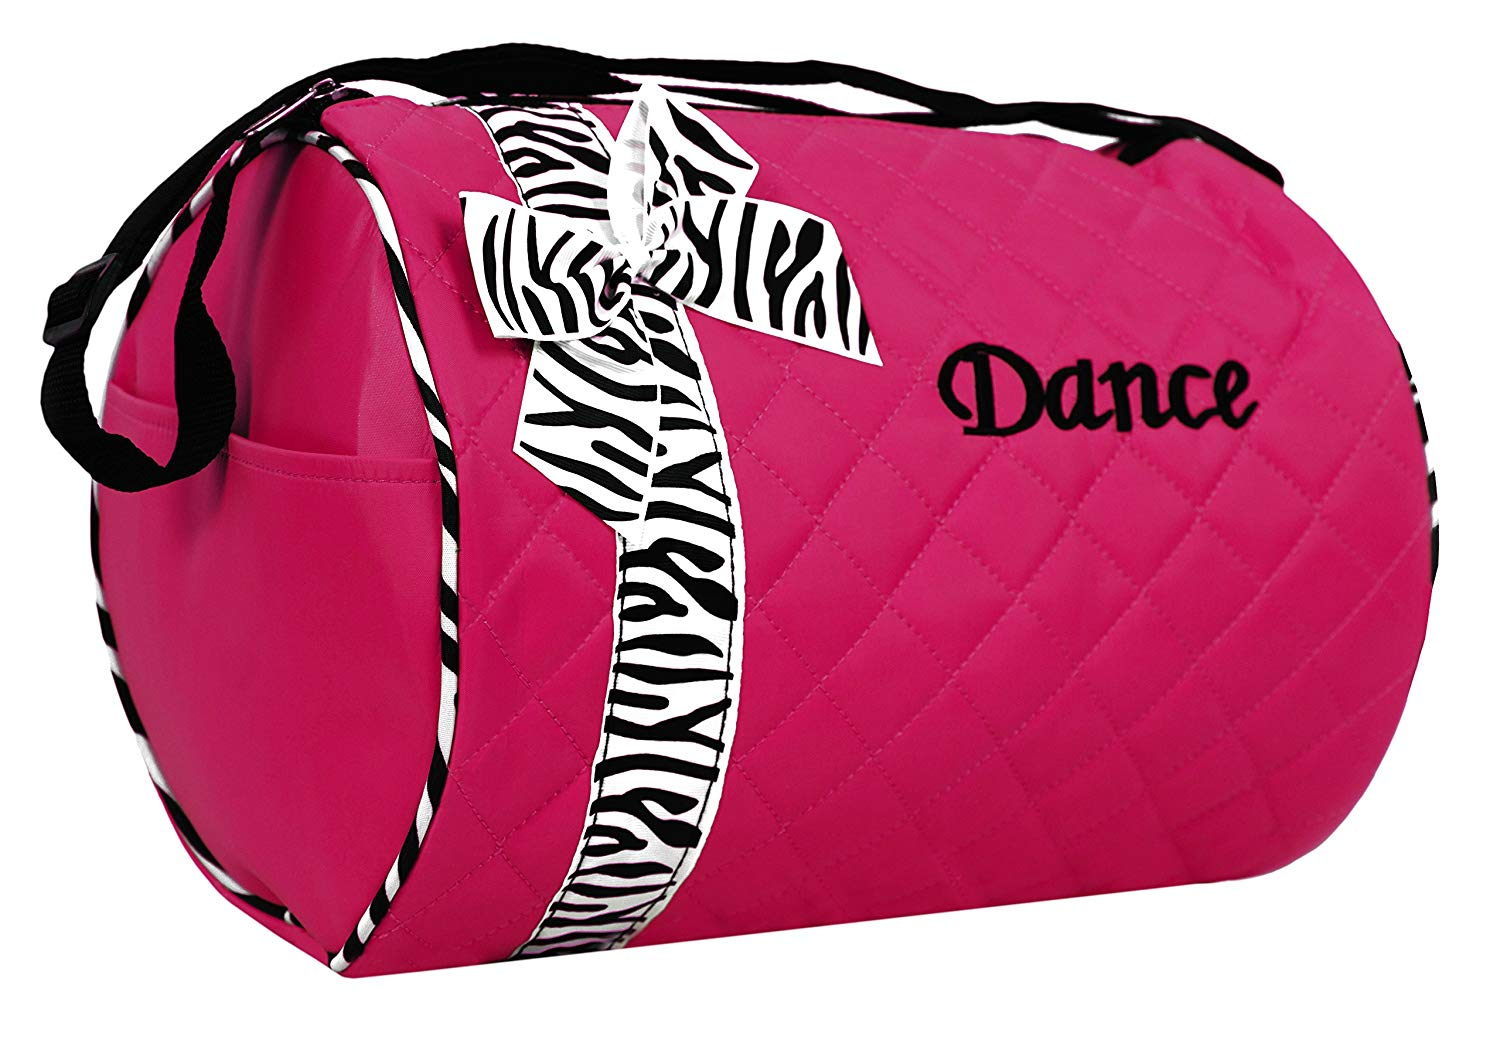 81d1aac4da70 Get Quotations · Dance bag - Quilted Zebra Duffle in Hot Pink